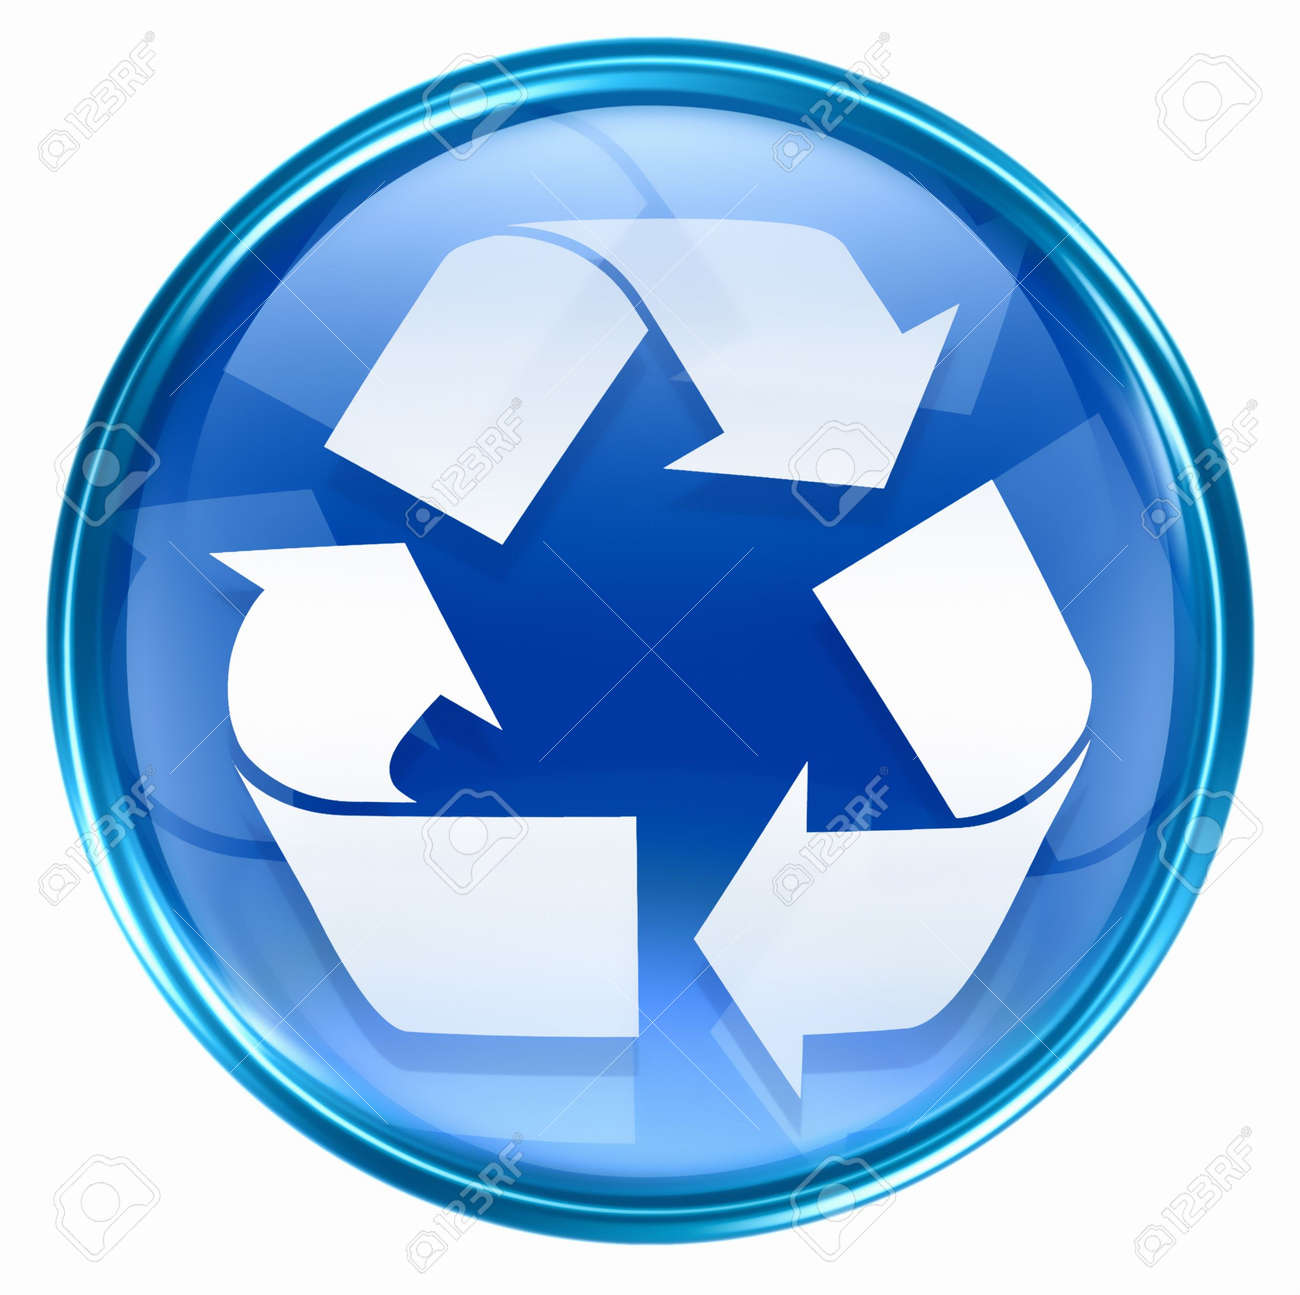 Recycling symbol icon blue, isolated on white background. Stock Photo - 2530848